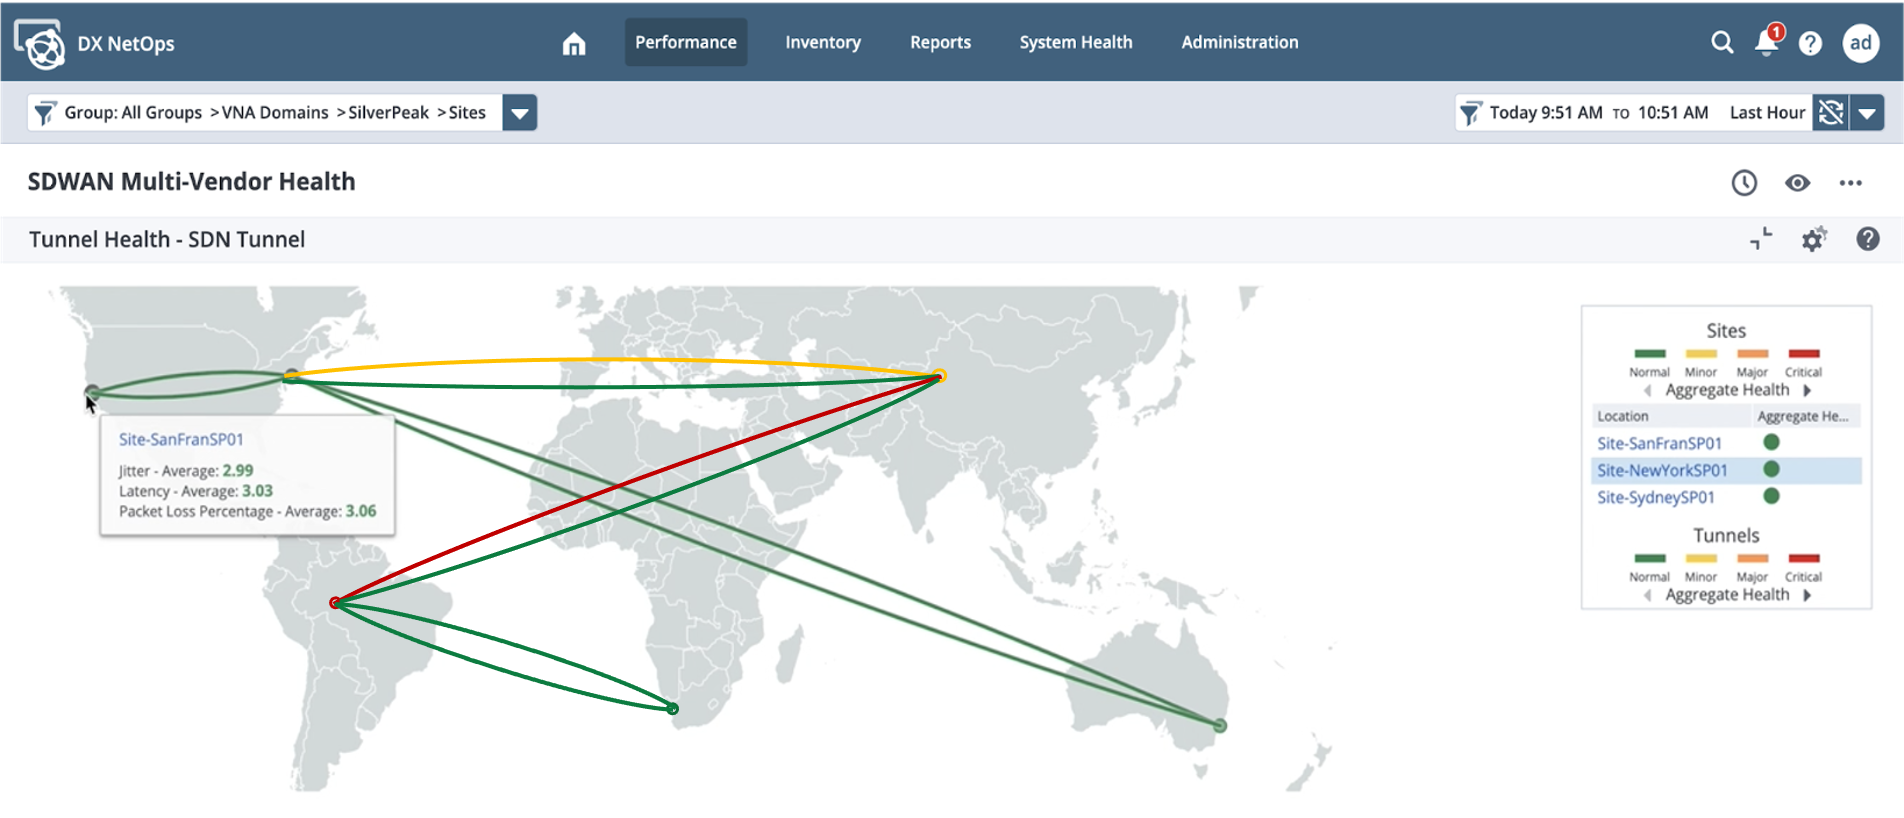 ESD_FY21_Academy-Blog.DX NetOps 21.2 Network Monitoring Software Continues to Improve Visibility with Expanded SD-WAN SDDC and SD-WiFi Coverage.Figure_01